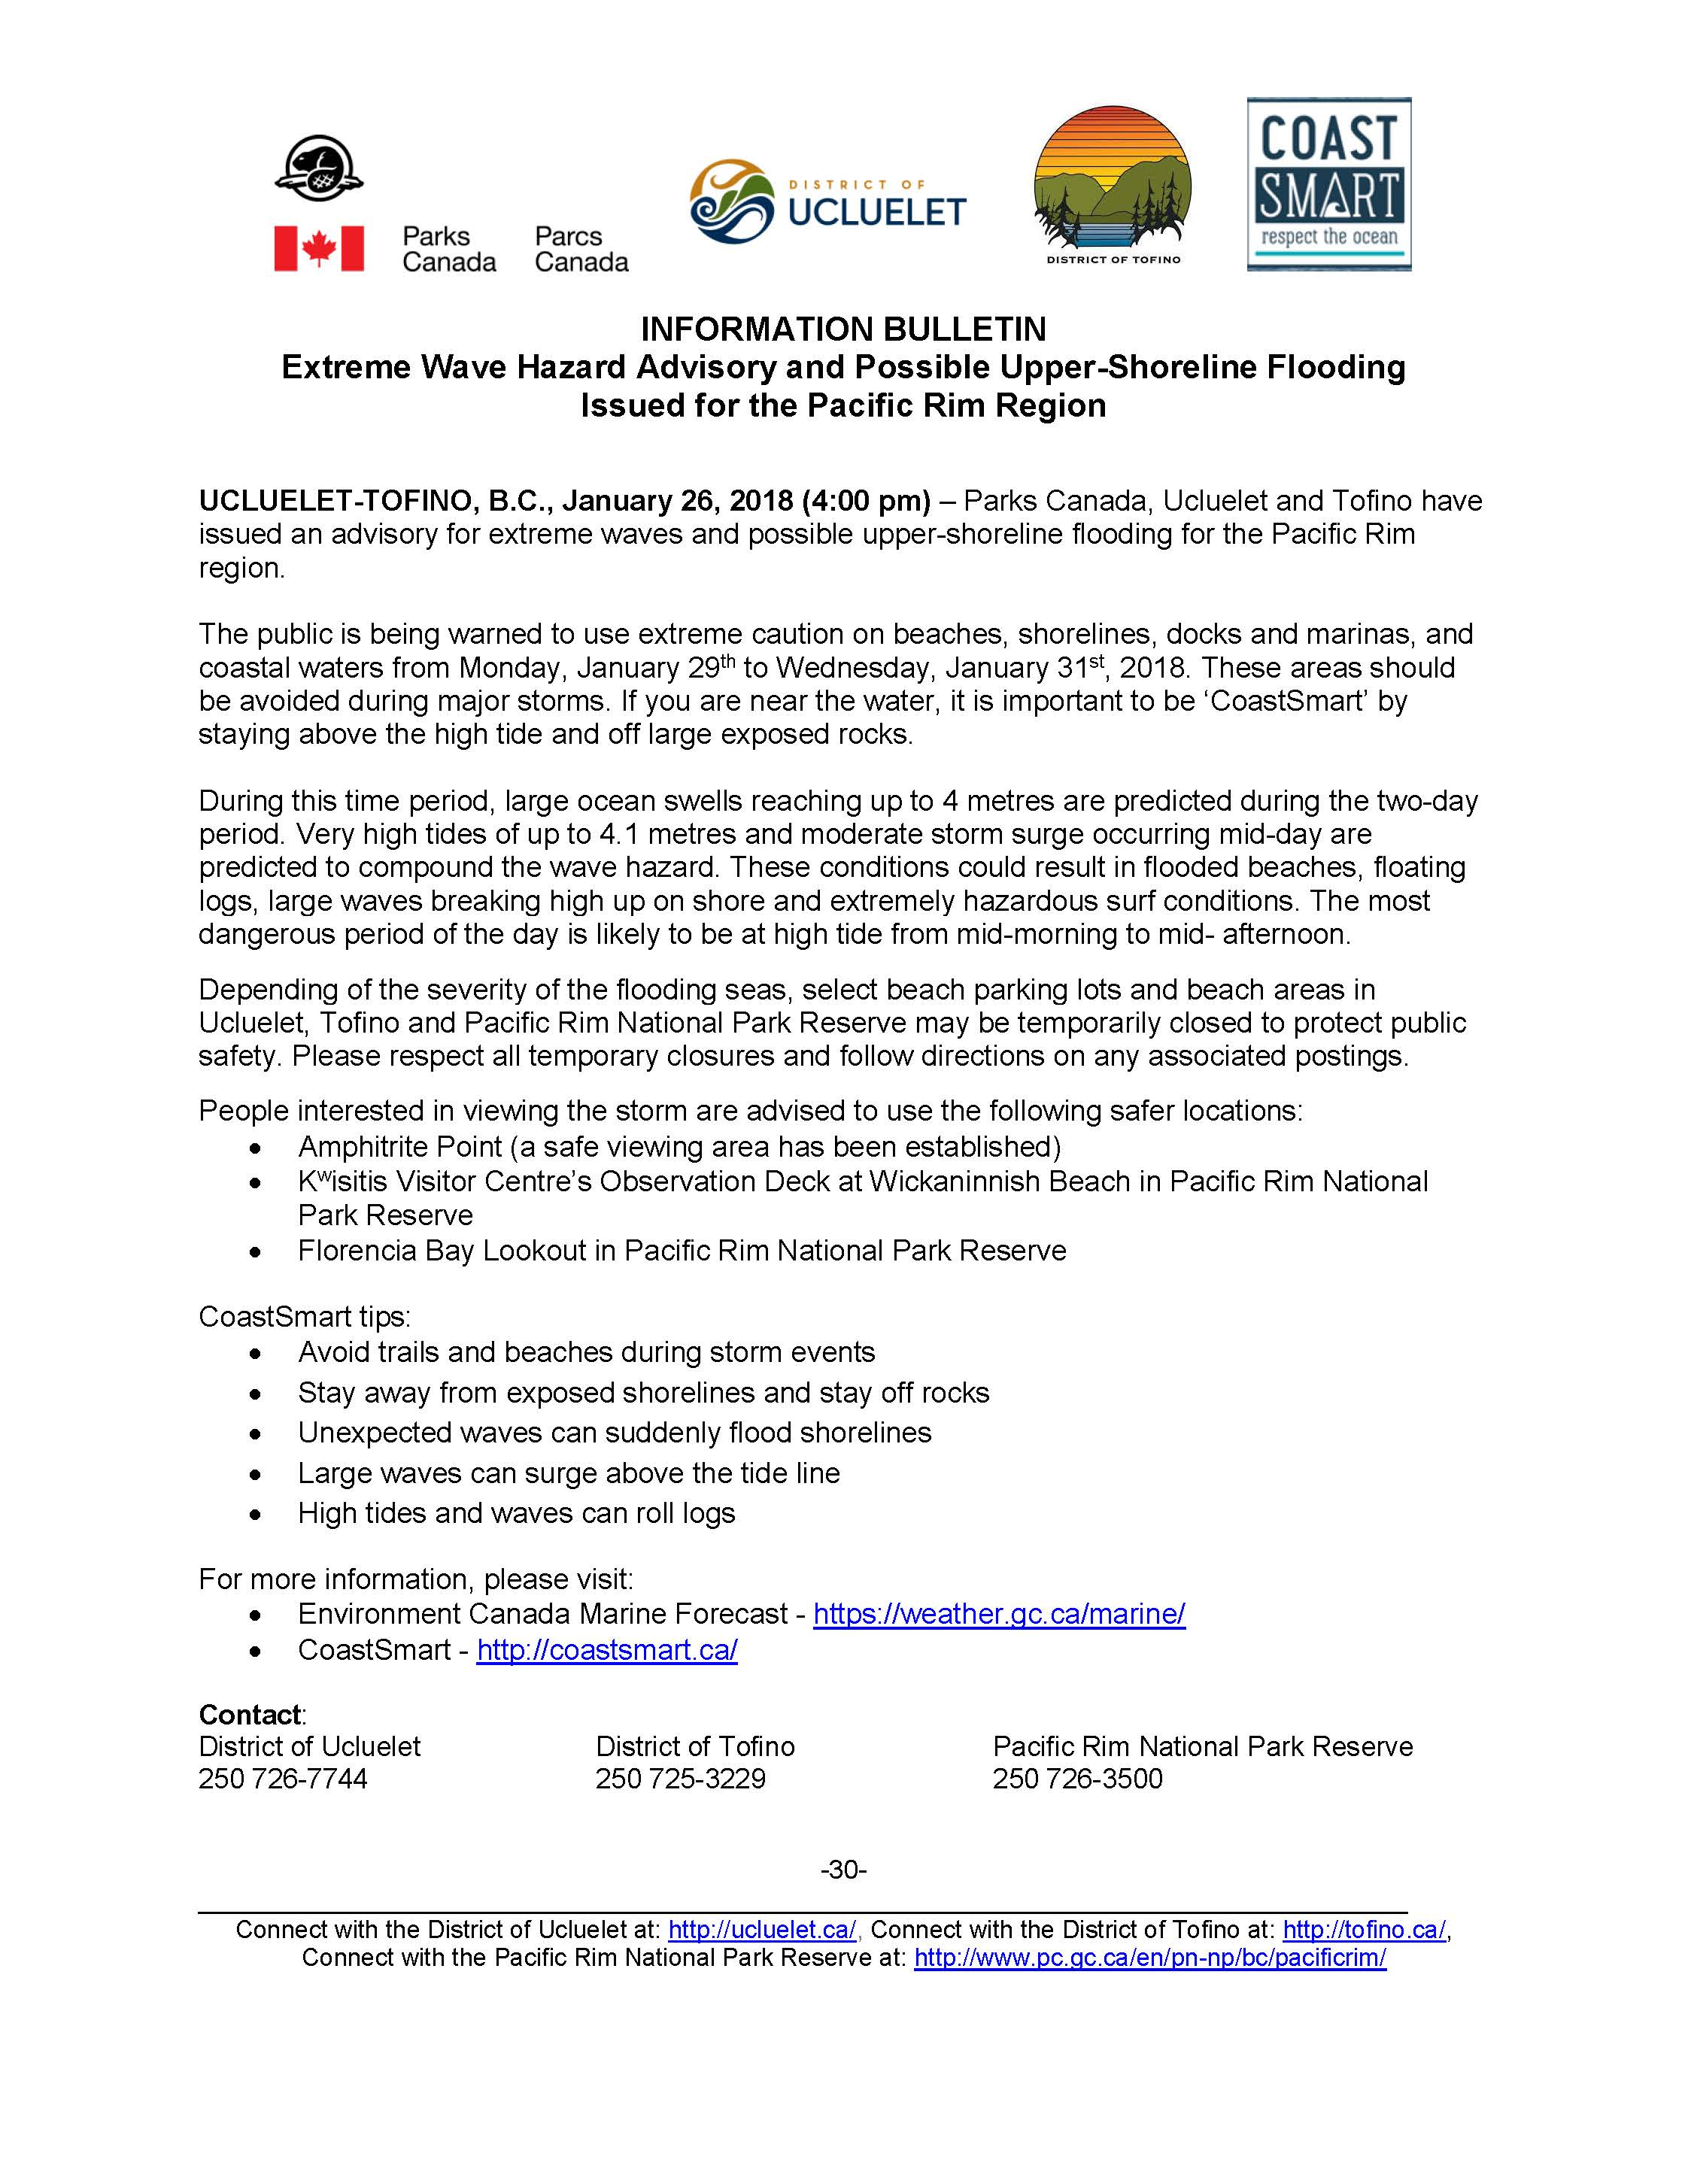 Extreme Wave Possible Flooding Info Release 1 Jan 26 2018 Ucluelet Tofino PRNPR